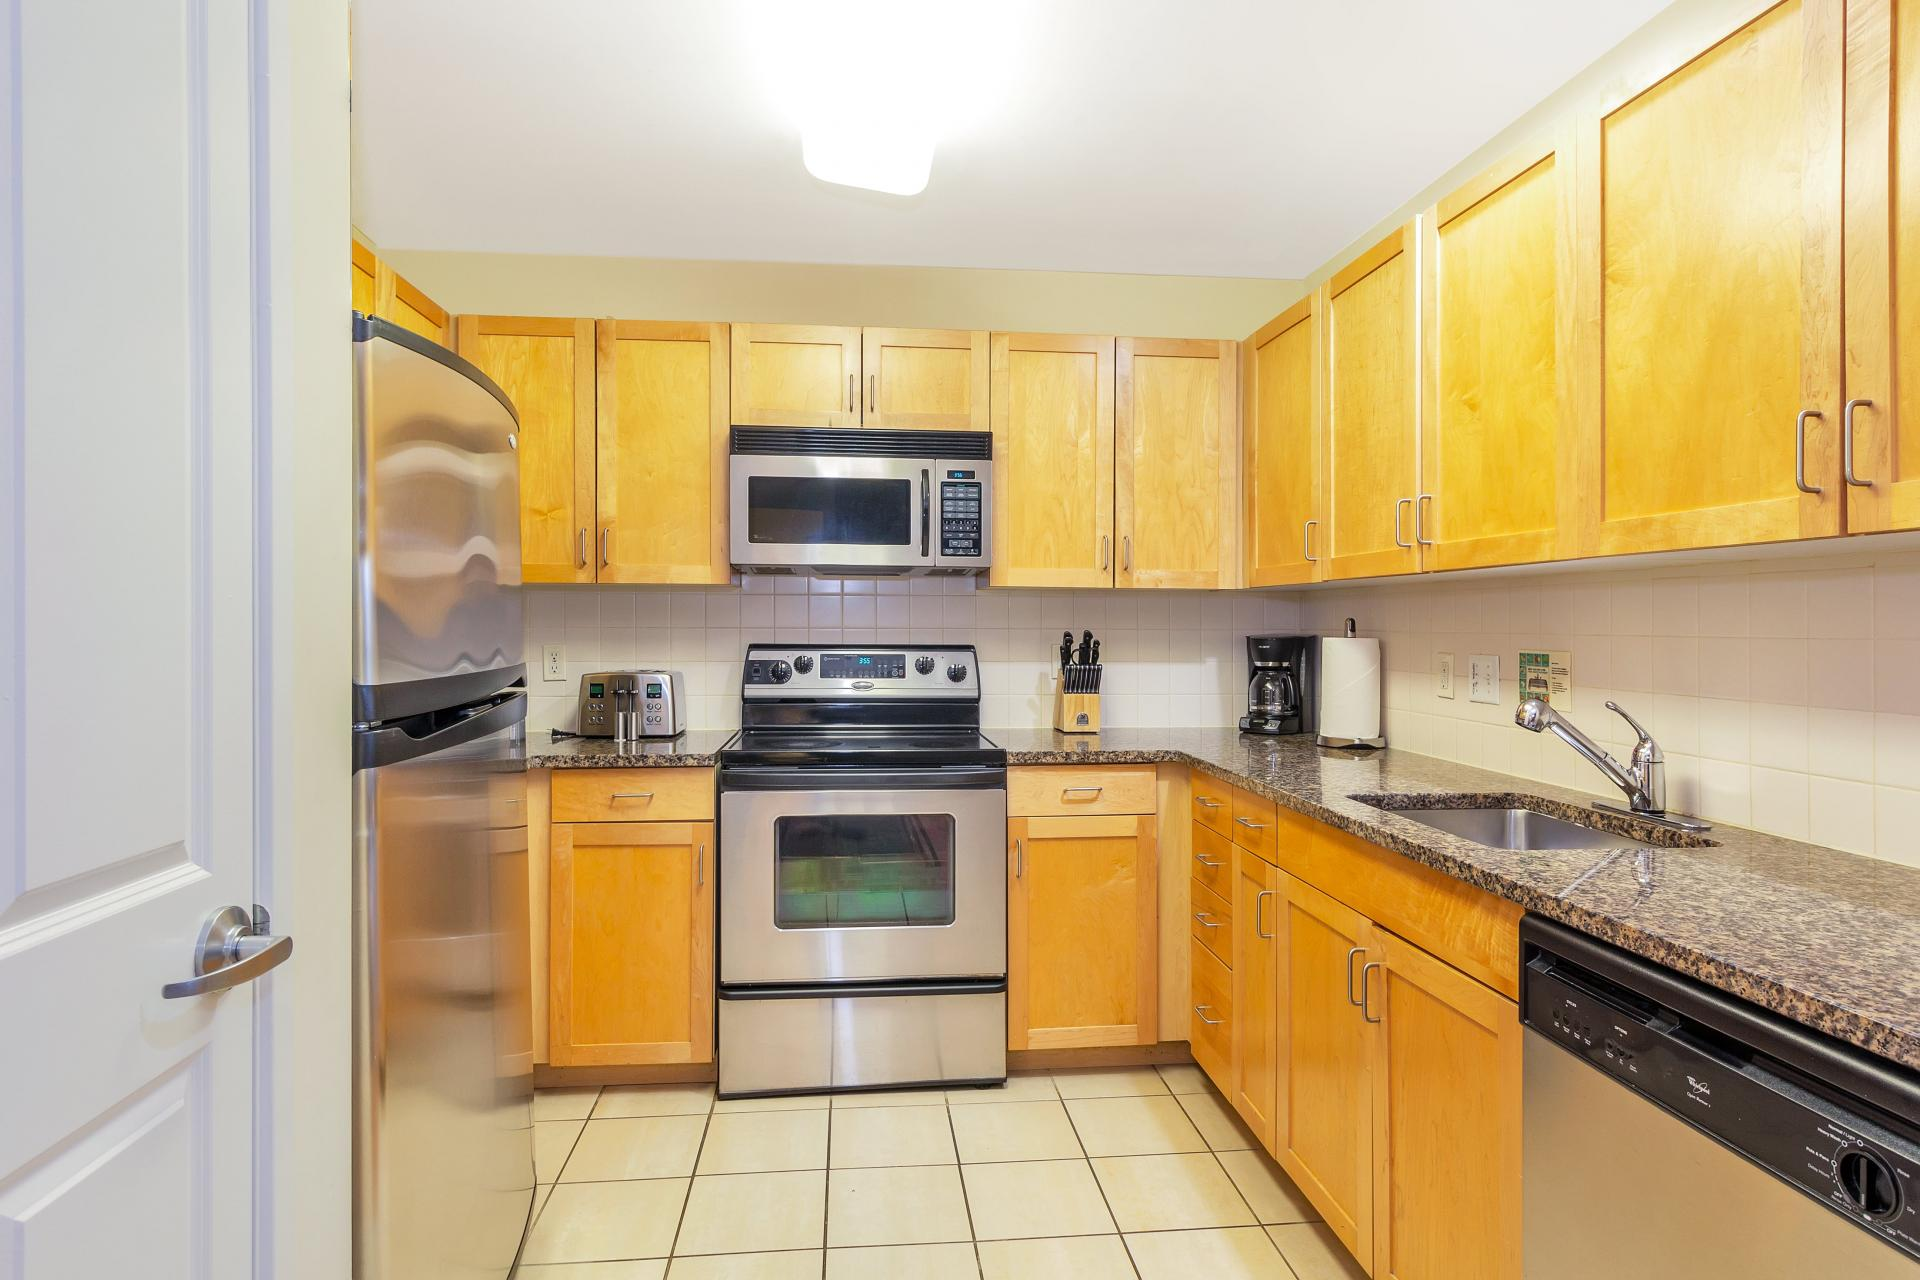 Kitchen at Exchange Place Station Apartments